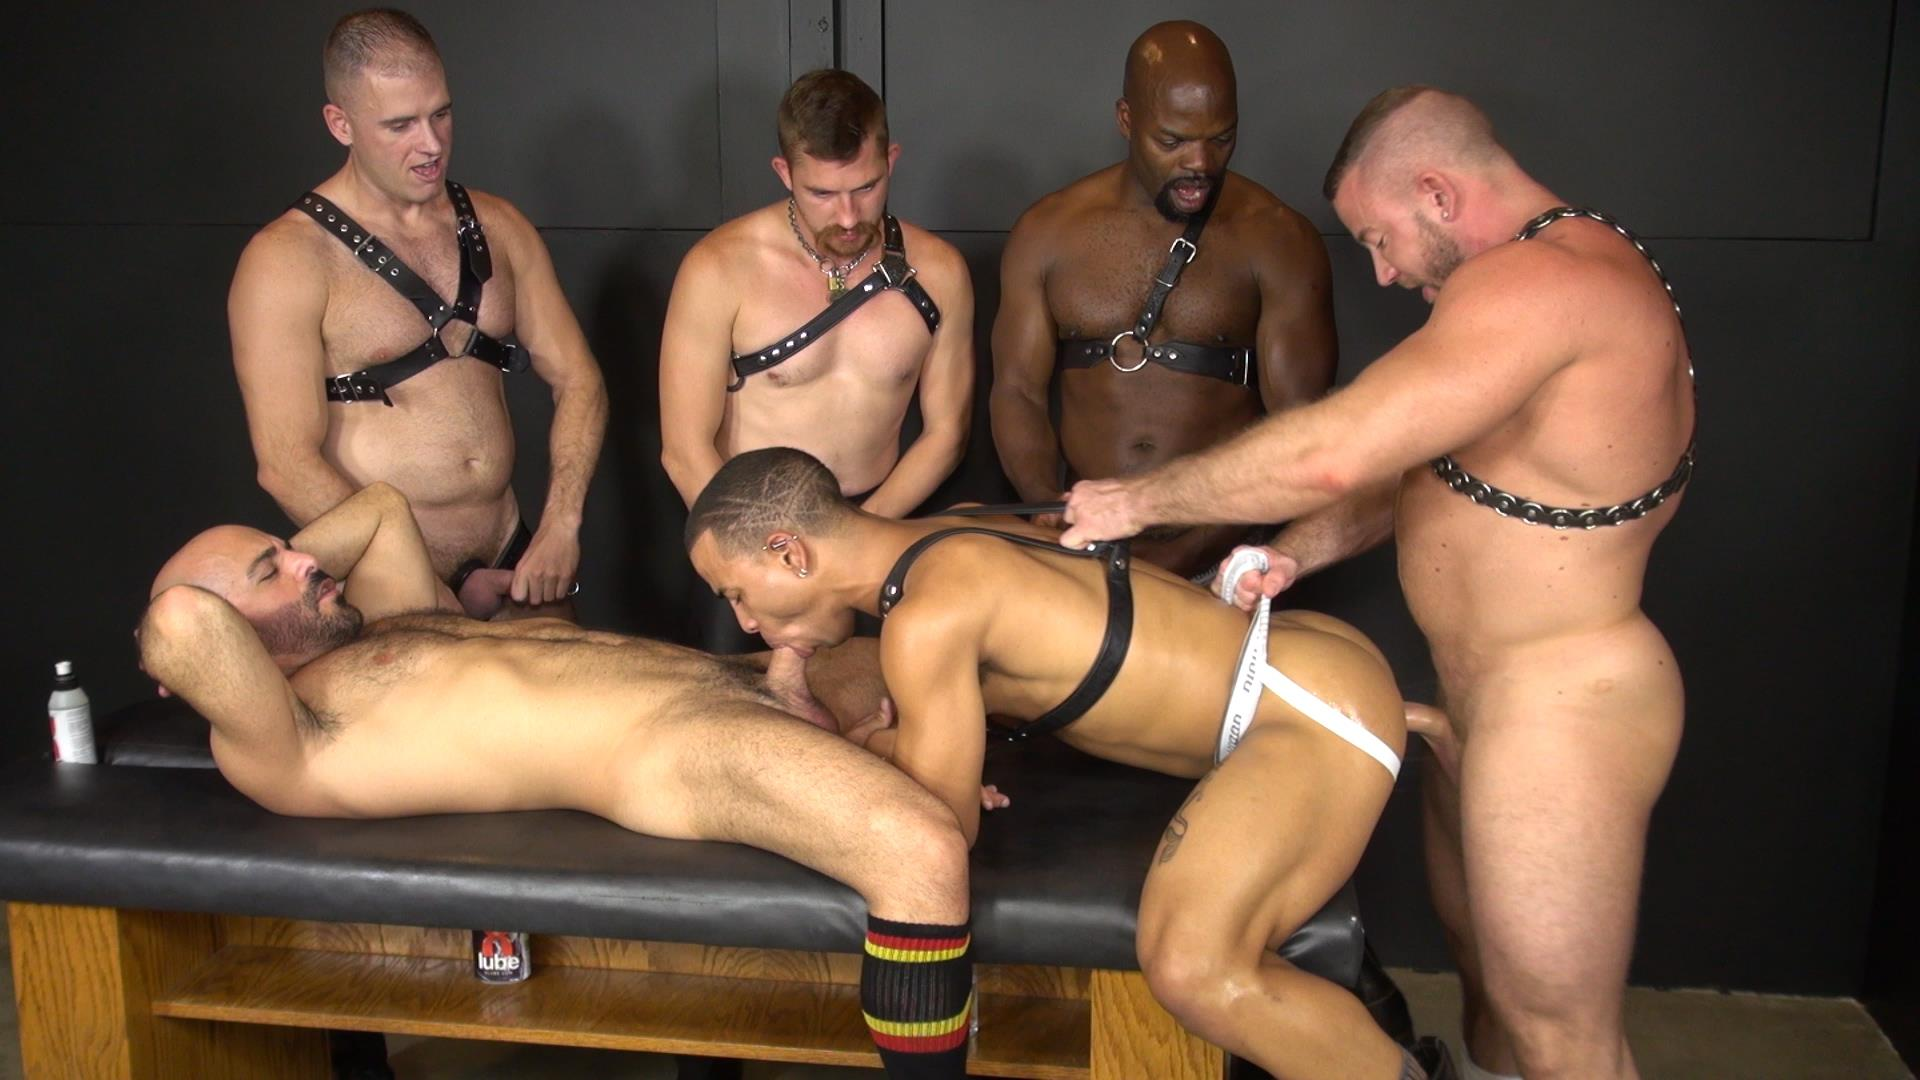 Raw-and-Rough-Ken-Byker-Dayton-OConnor-Trelino-Shay-Michaels-Adam-Russo-Cutler-X-Interracial-Bareback-Orgy-Amateur-Gay-Porn-09 Interracial Bareback Orgy With Adam Russo & Cutler X